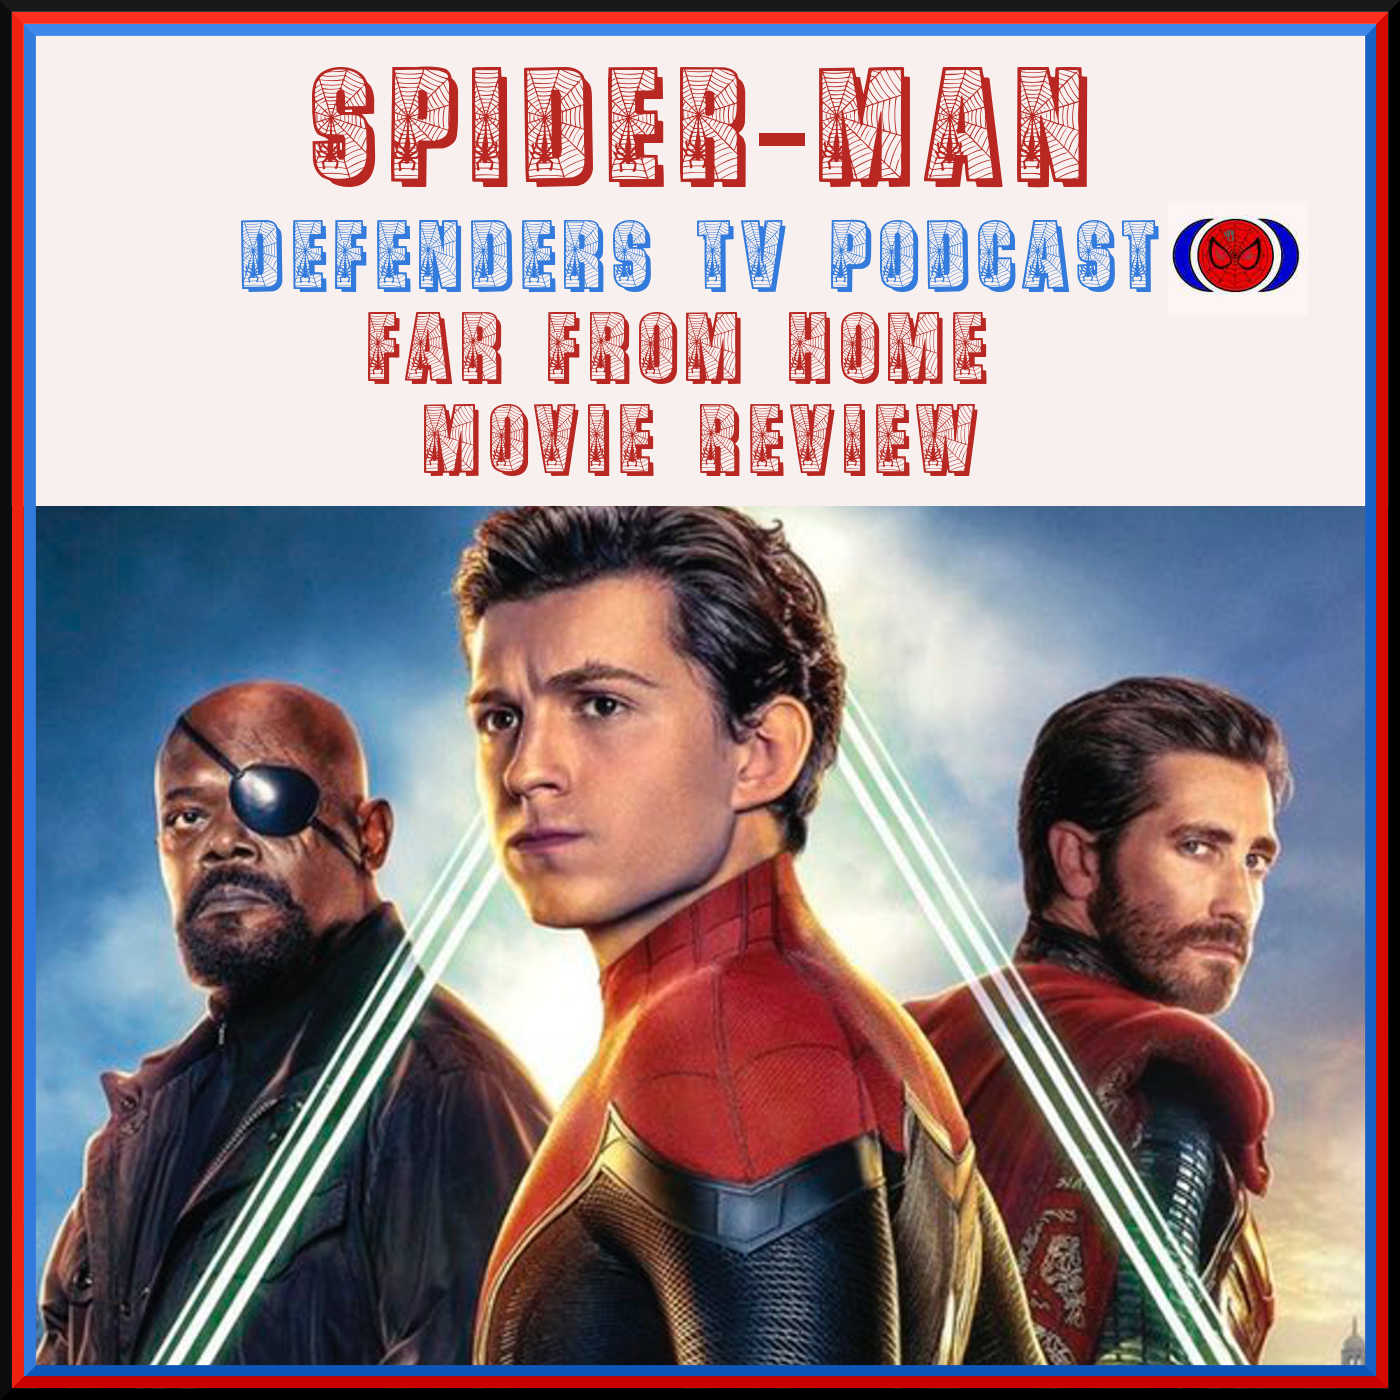 Defenders TV Podcast - This is the home of our Podcast about the